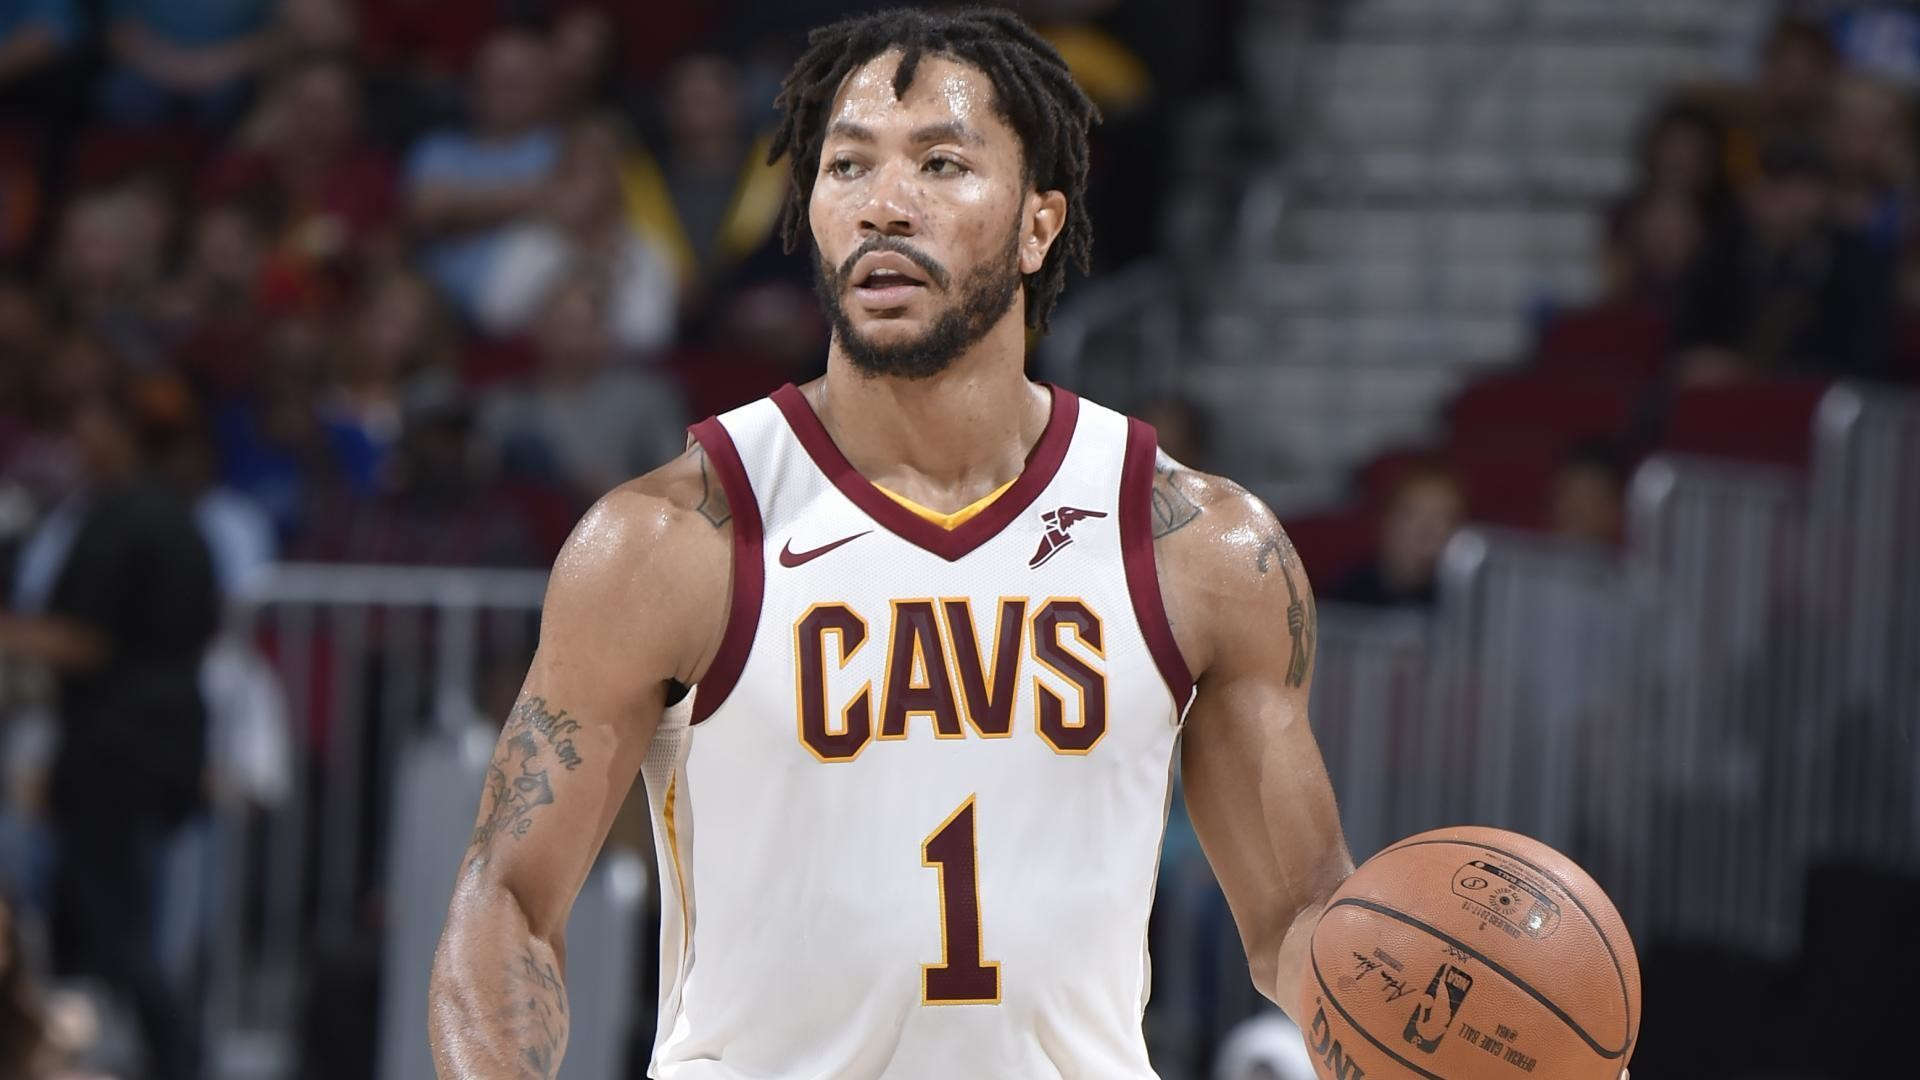 Derrick rose wallpaper hd 2018 derrick rose wallpapers hd voltagebd Image collections